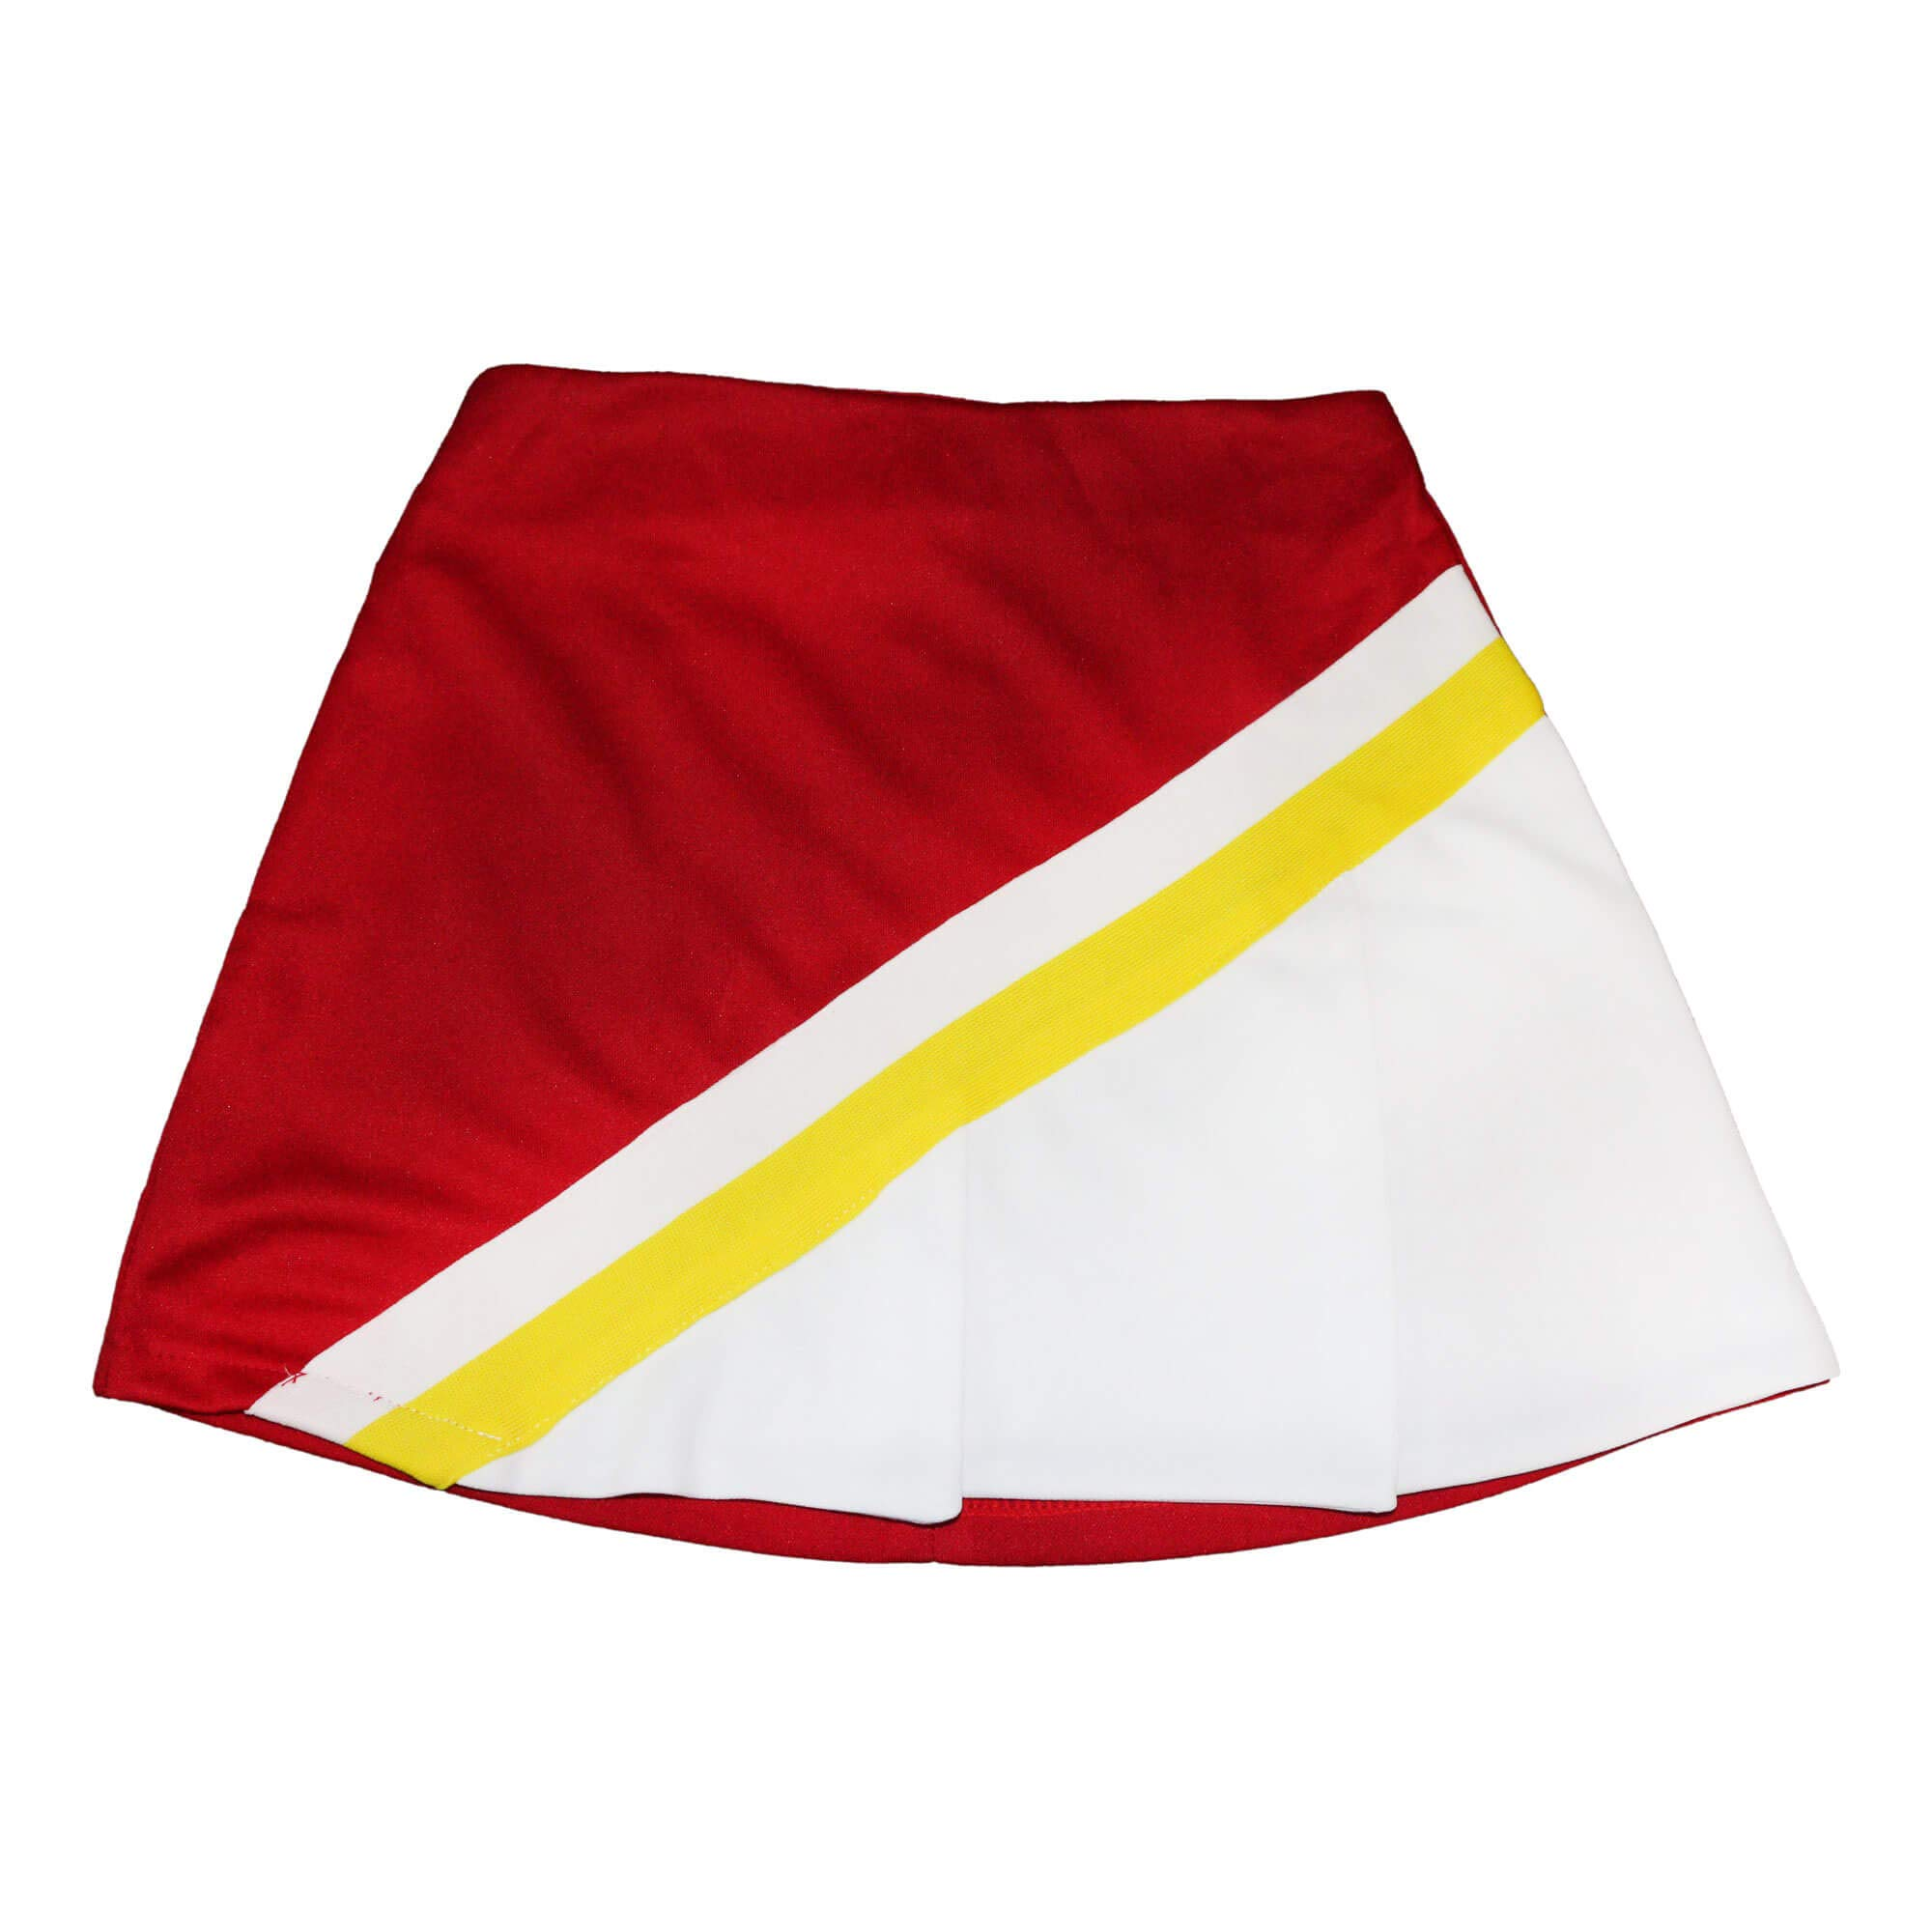 Danzcue Child Cheerleading A-Line Pleat Skirt, Scarlet-White, Large by Danzcue